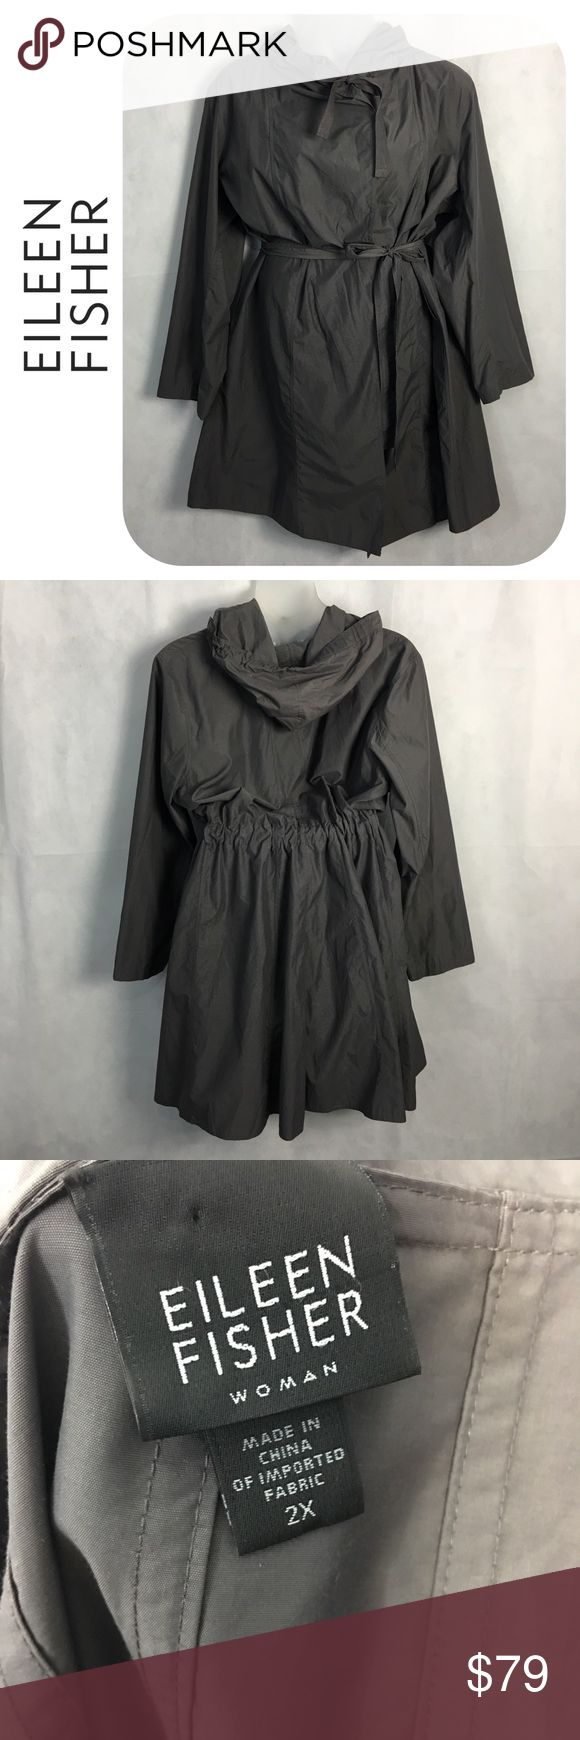 Eileen Fisher Woman Plus Hooded Raincoat Size 2x Eileen Fisher Hooded Raincoat Size 2x  Excellent condition  Material pictured Eileen Fisher Jackets & Coats